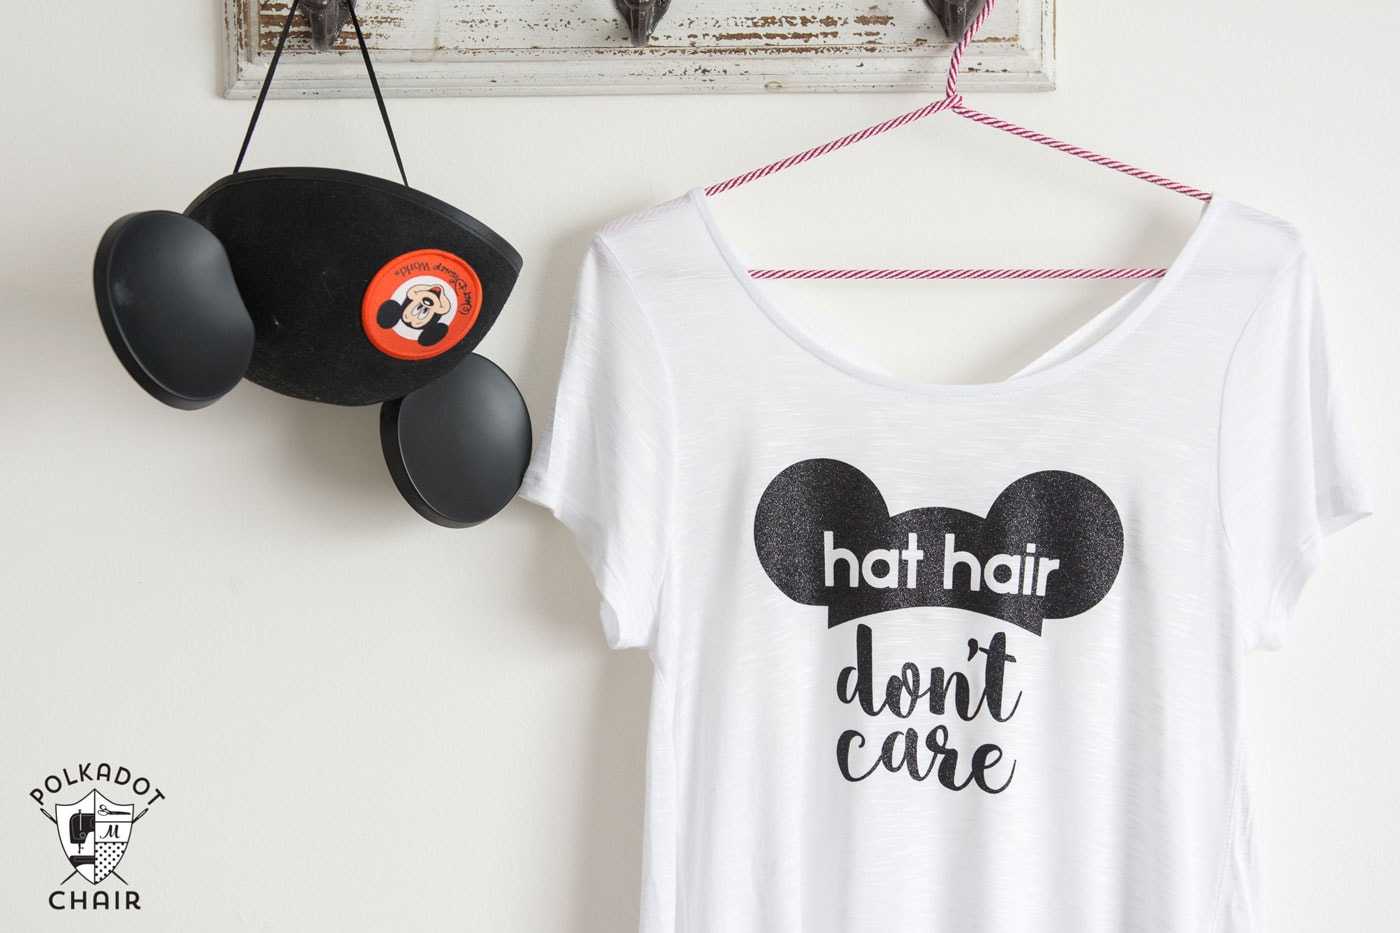 DIY Disney T-Shirt; Hat Hair, Don't Care - The Polka Dot Chair